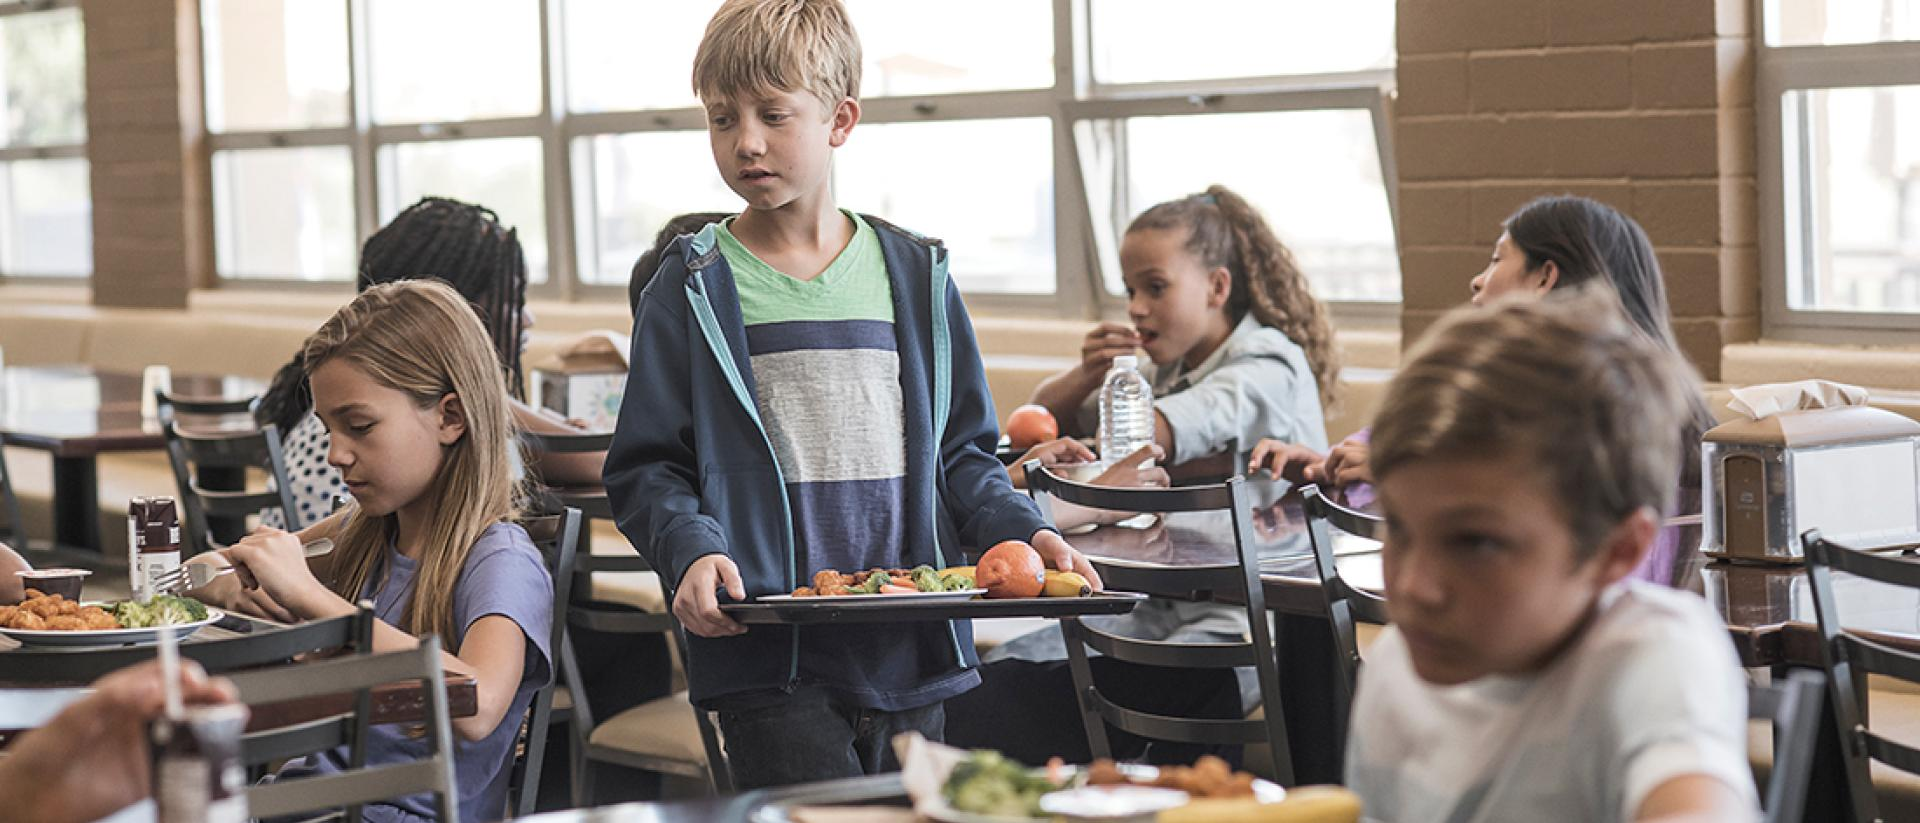 Child holding a lunch tray of food in a school cafeteria